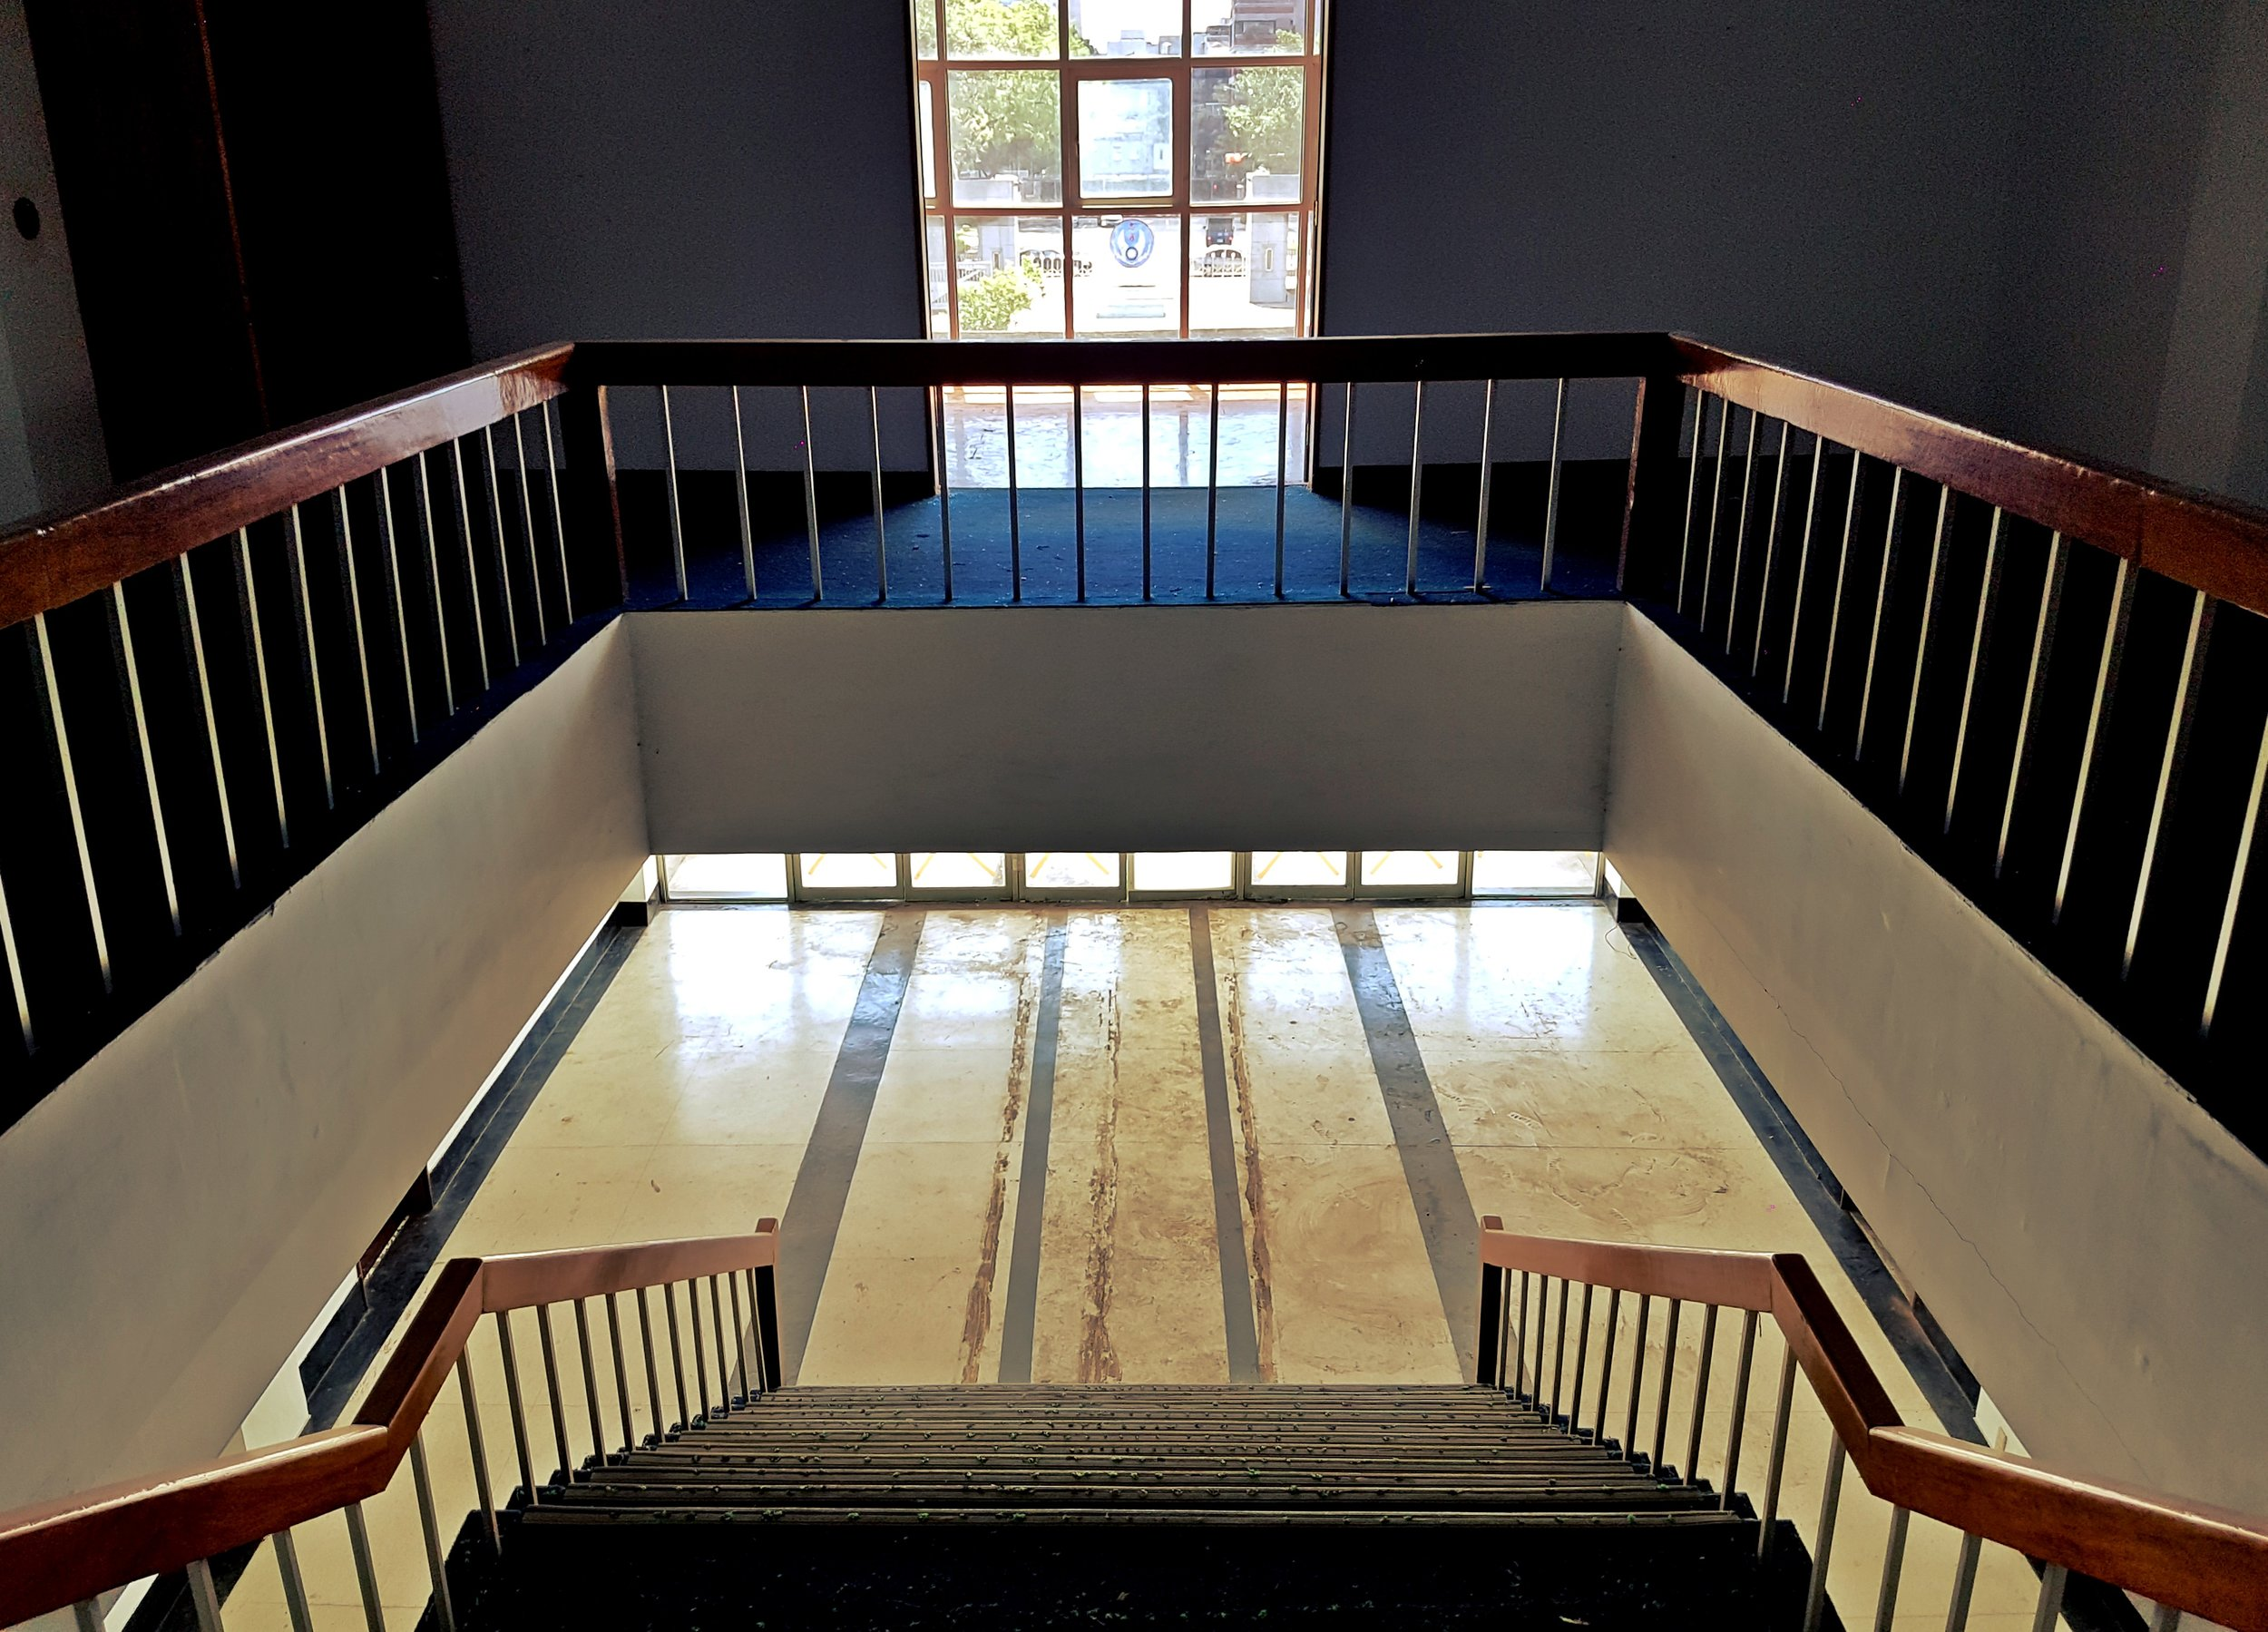 The main stairway looks a lot like one in my university dorms.